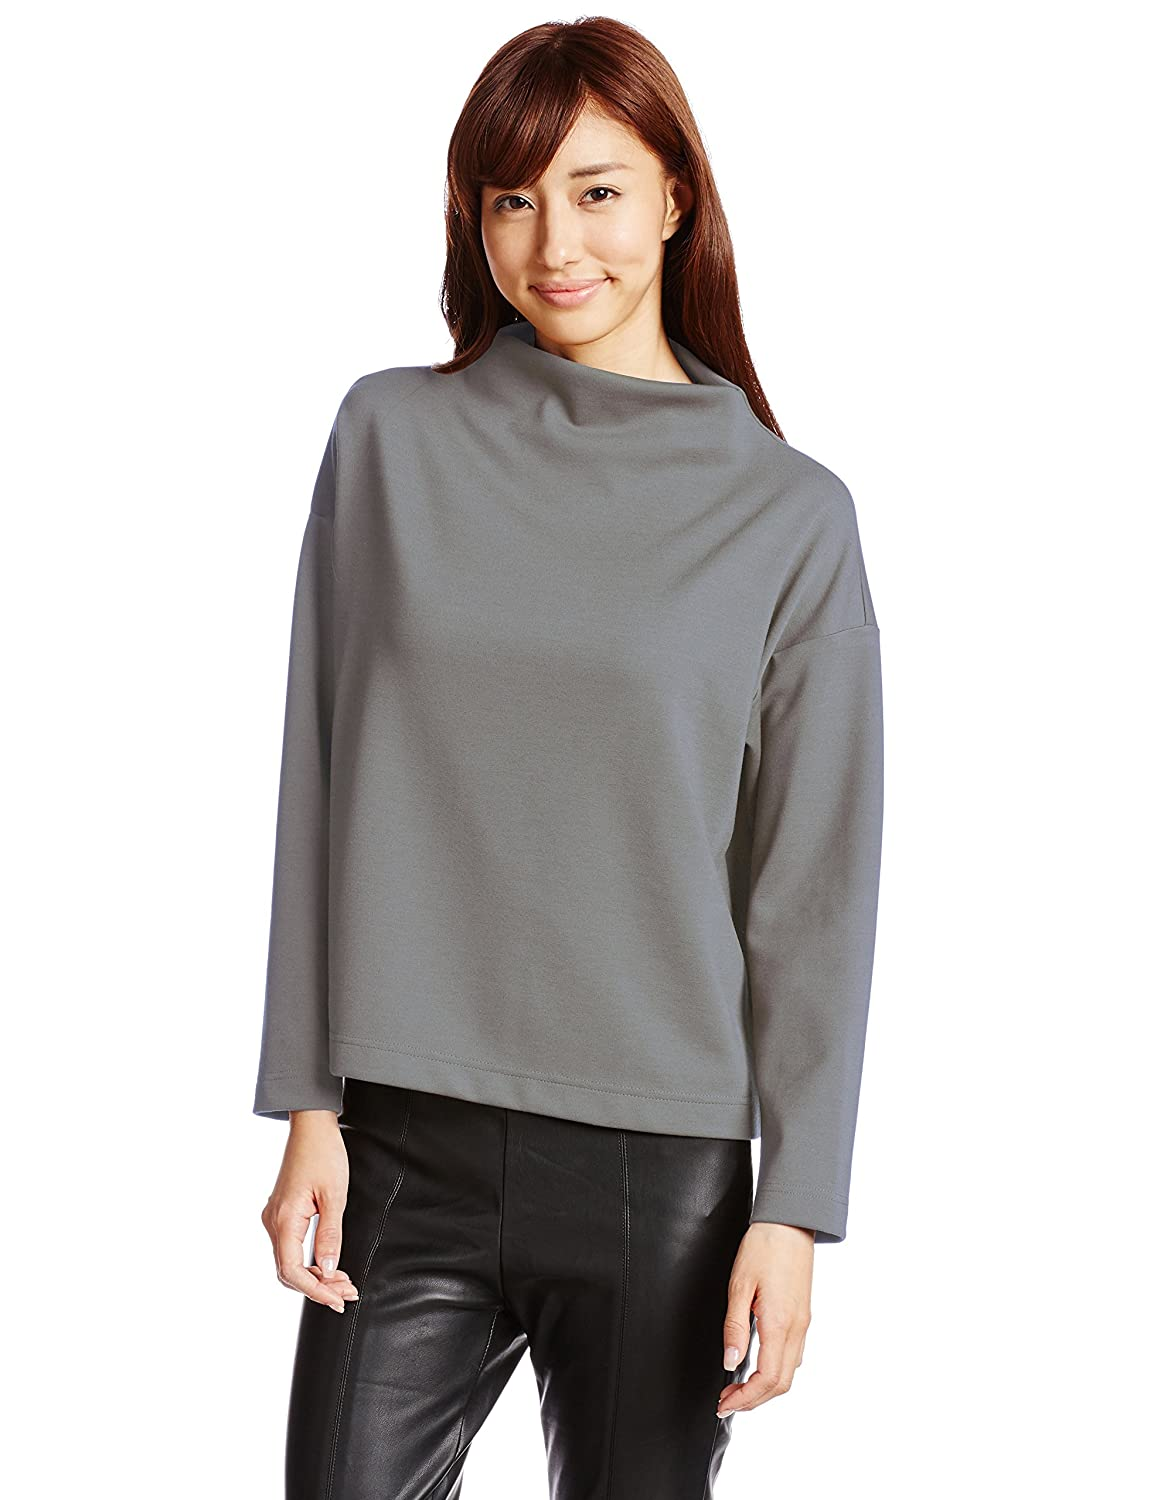 (マウジー)MOUSSY OVER BOTTLE NECK TOPS 0108AA80-7180 BEG FREE : 服&ファッション小物通販 | Amazon.co.jp